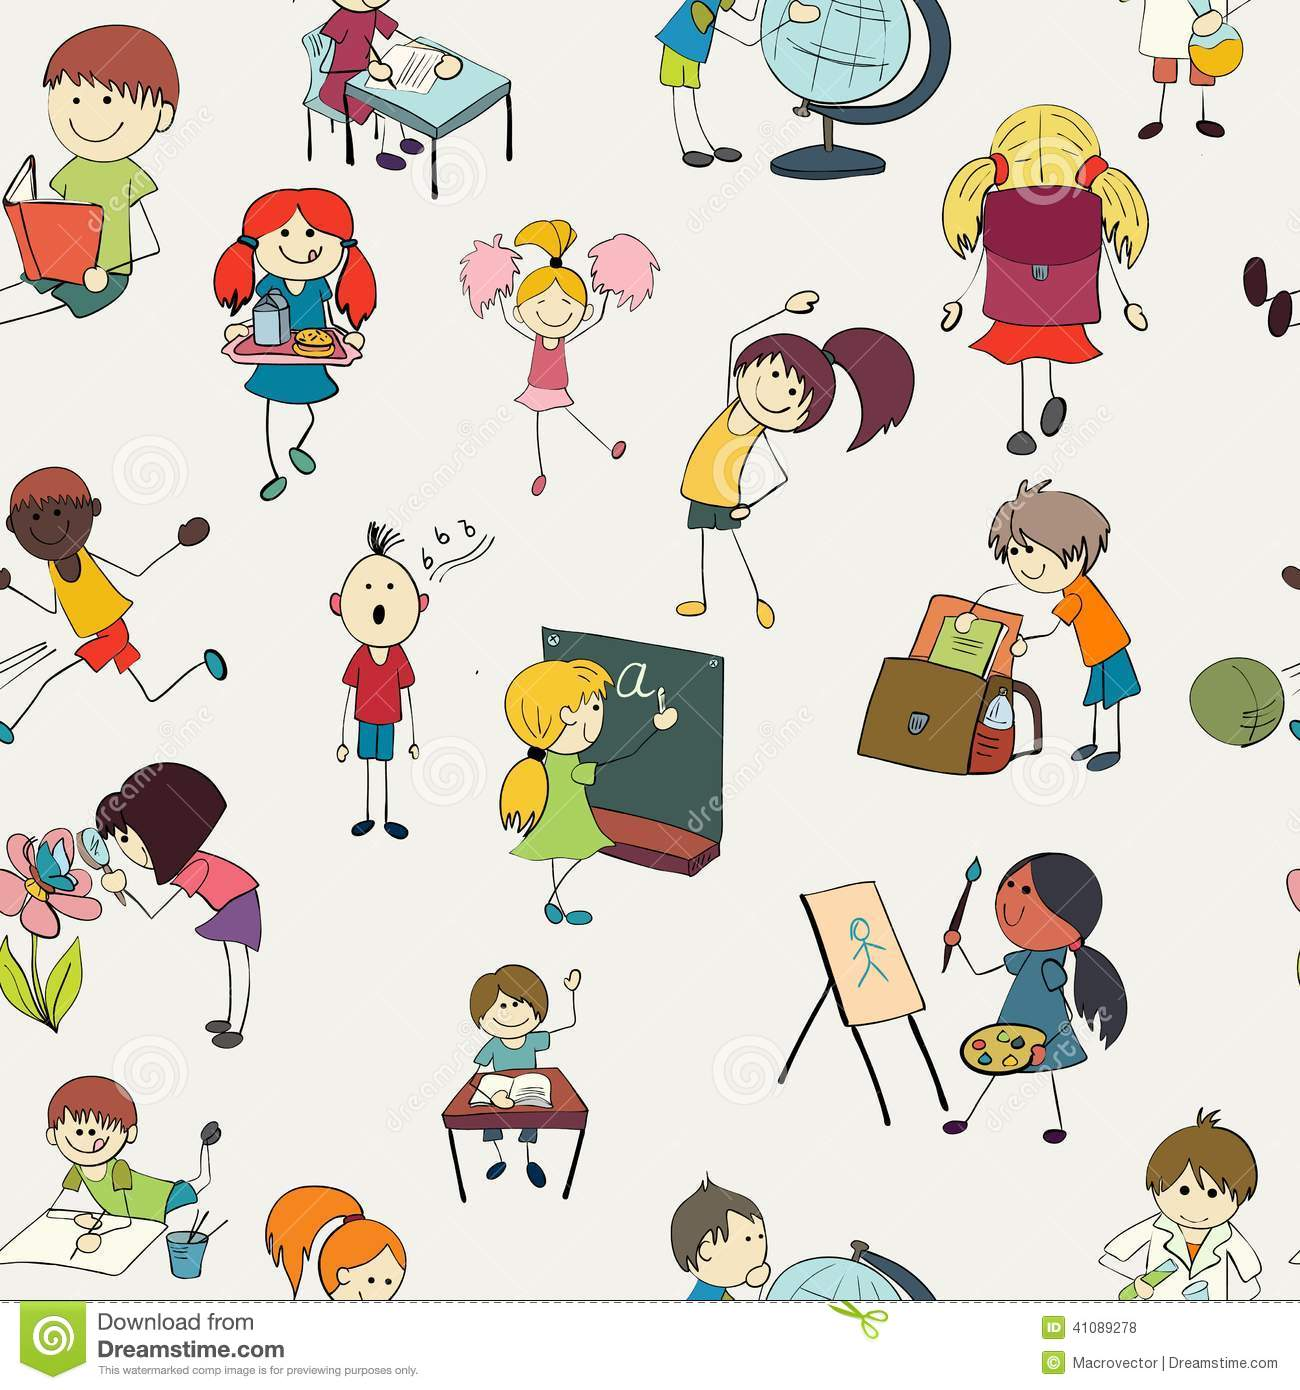 School clipart patterns clipart library School clipart patterns - ClipartFox clipart library